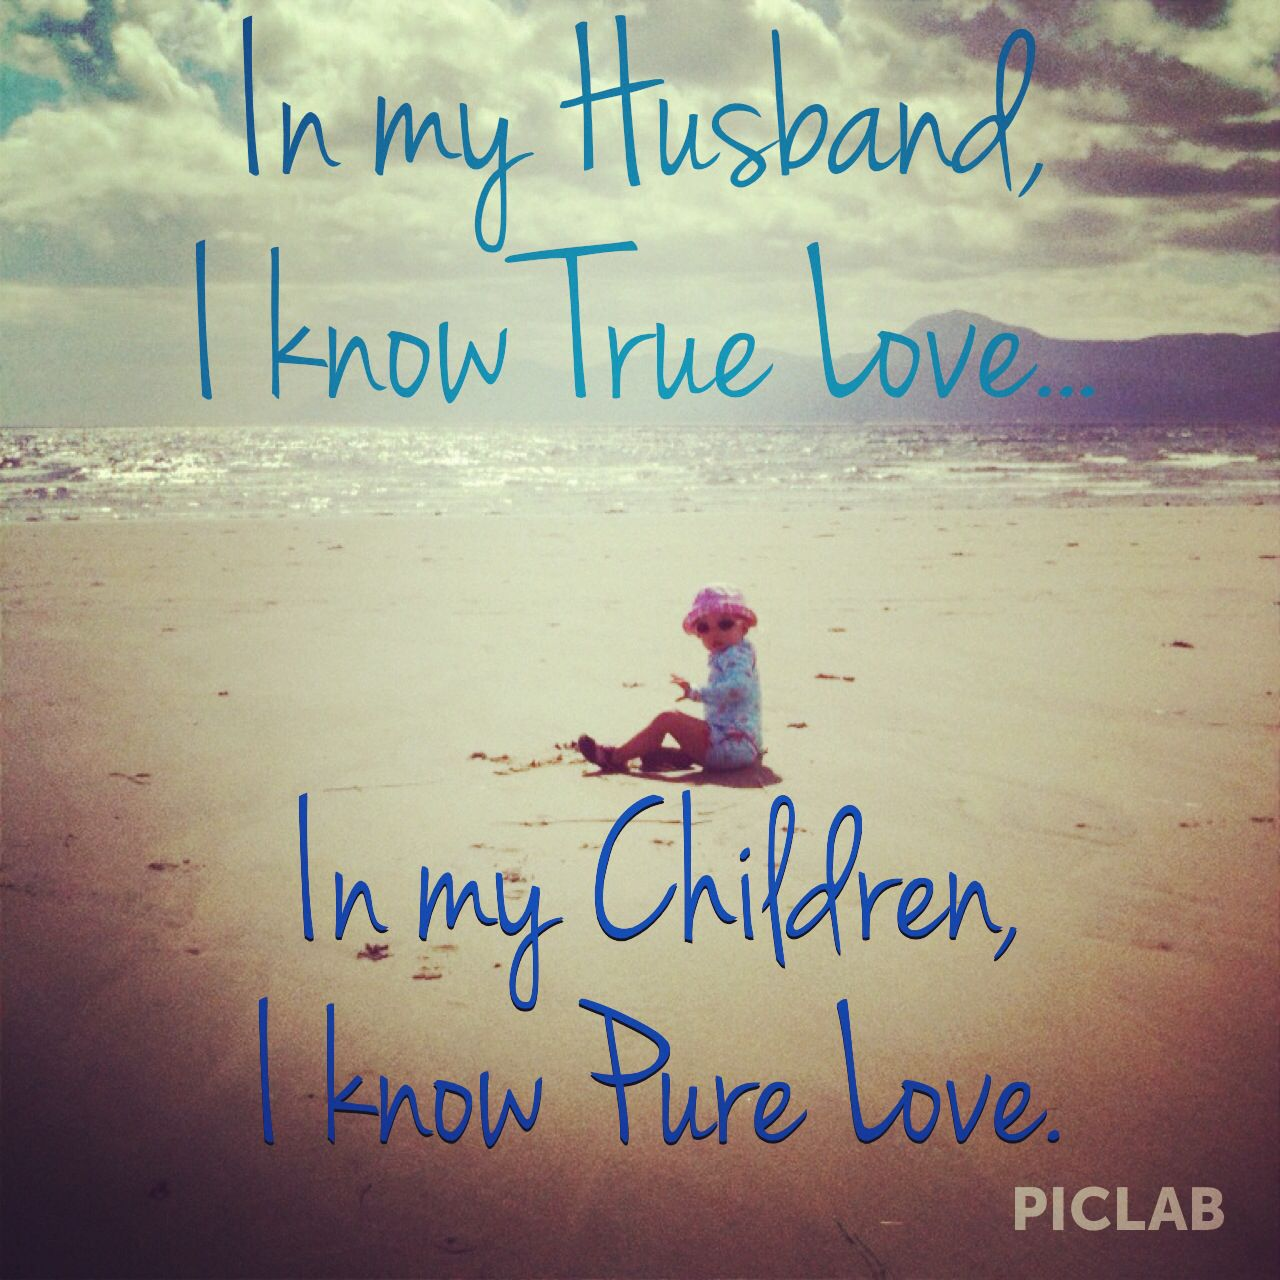 Love Quotes Kids Truth  Love Quote Husband & Children In My Husband I Know True